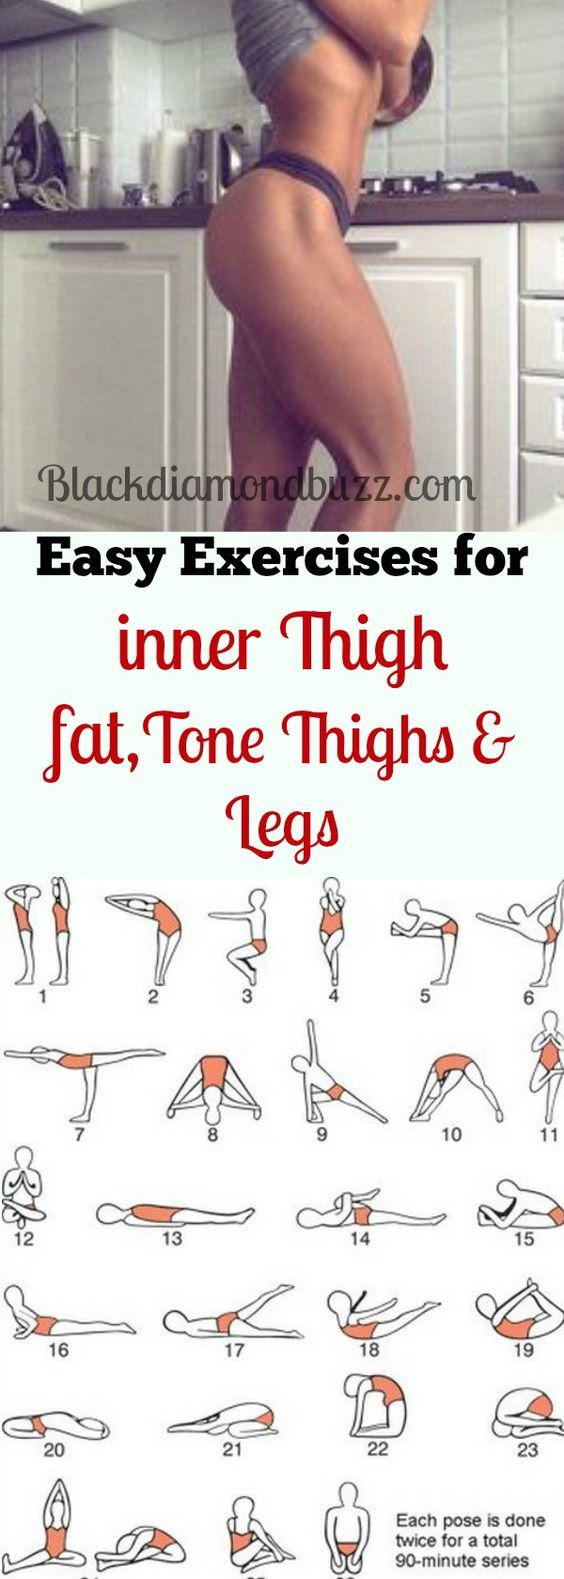 Best simple exercises to lose inner thighs fat and burn belly fat; tone thighs, legs and slimming waistline fast. It will not take more than 10 minutes for each workout every day and you are guaranteed of losing 10 pound in 7 days